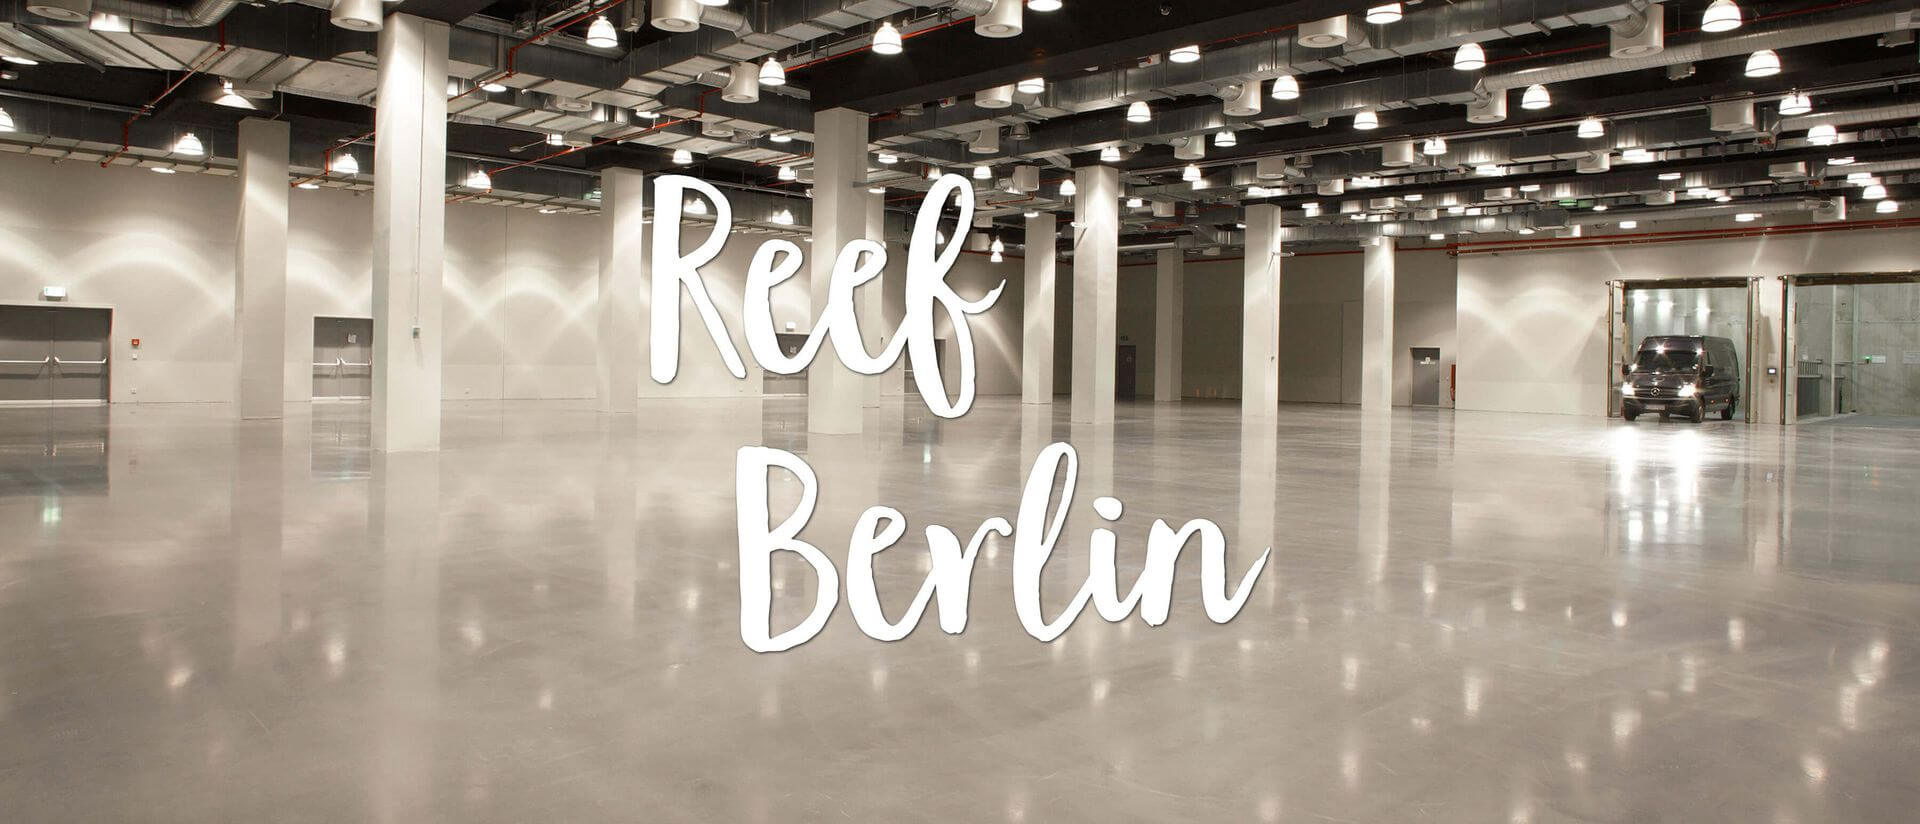 reef berlin large empty event area with heavy duty lift